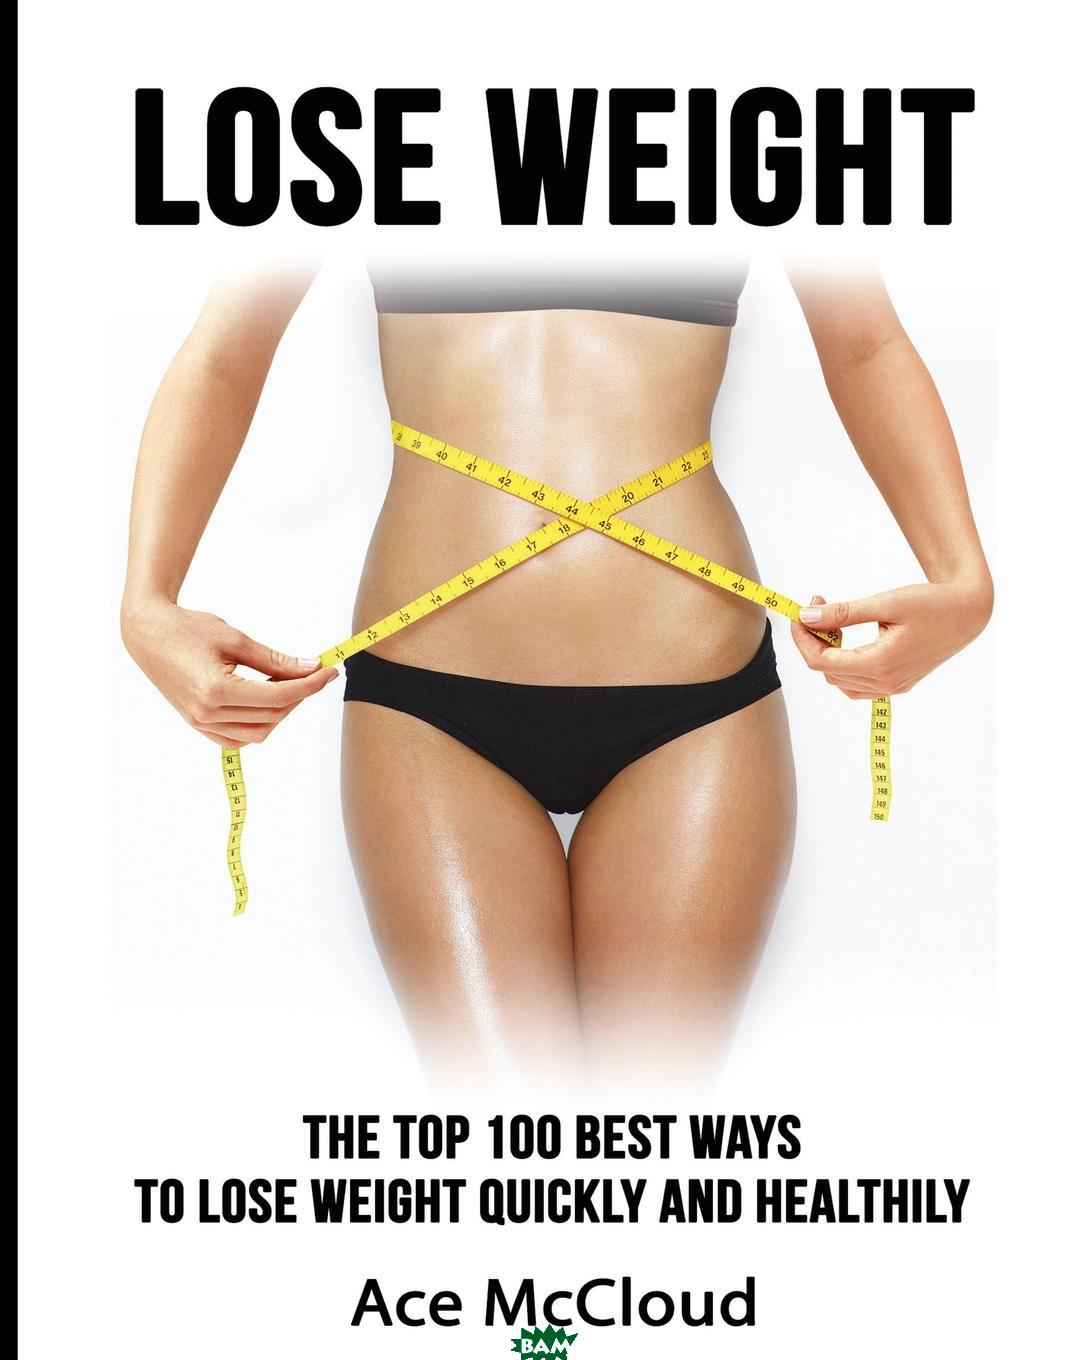 Lose Weight. The Top 100 Best Ways To Lose Weight Quickly and Healthily, Ace McCloud, 9781640480490  - купить со скидкой